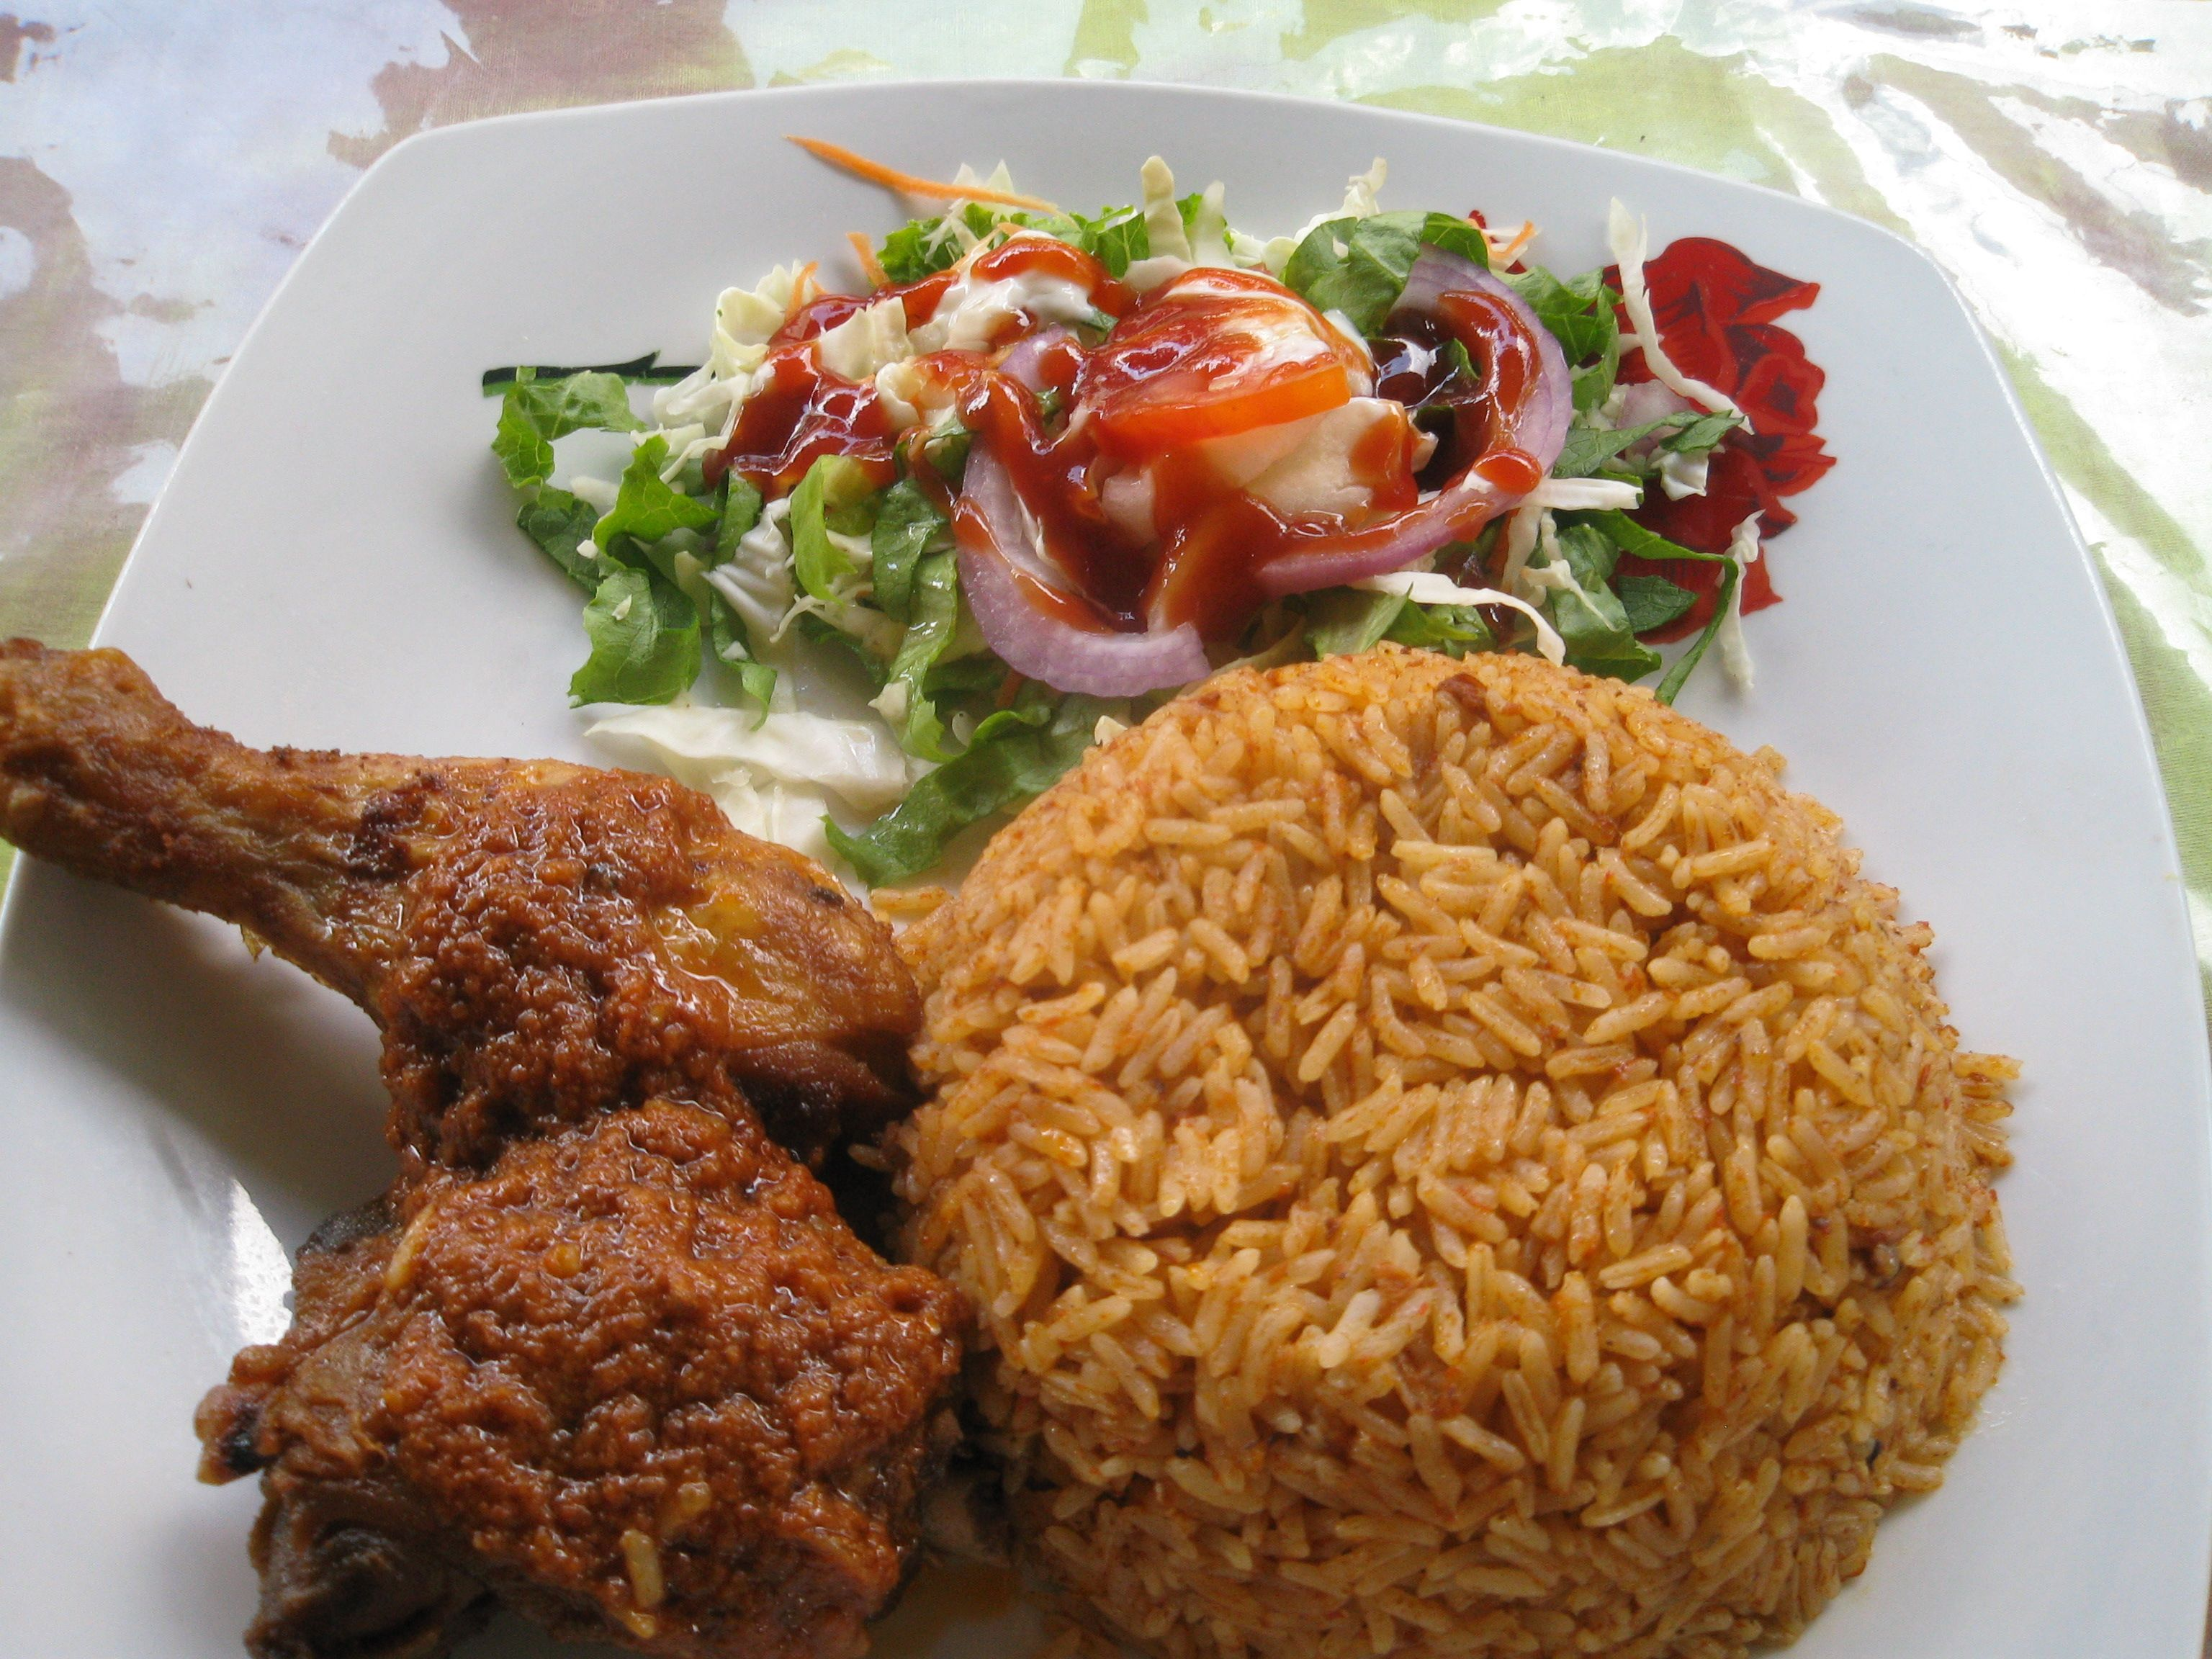 Foods Of Ghana  Food Dish Chicken Onions Tomatoes Kpakpo Ampesi Gari Rice  Episode